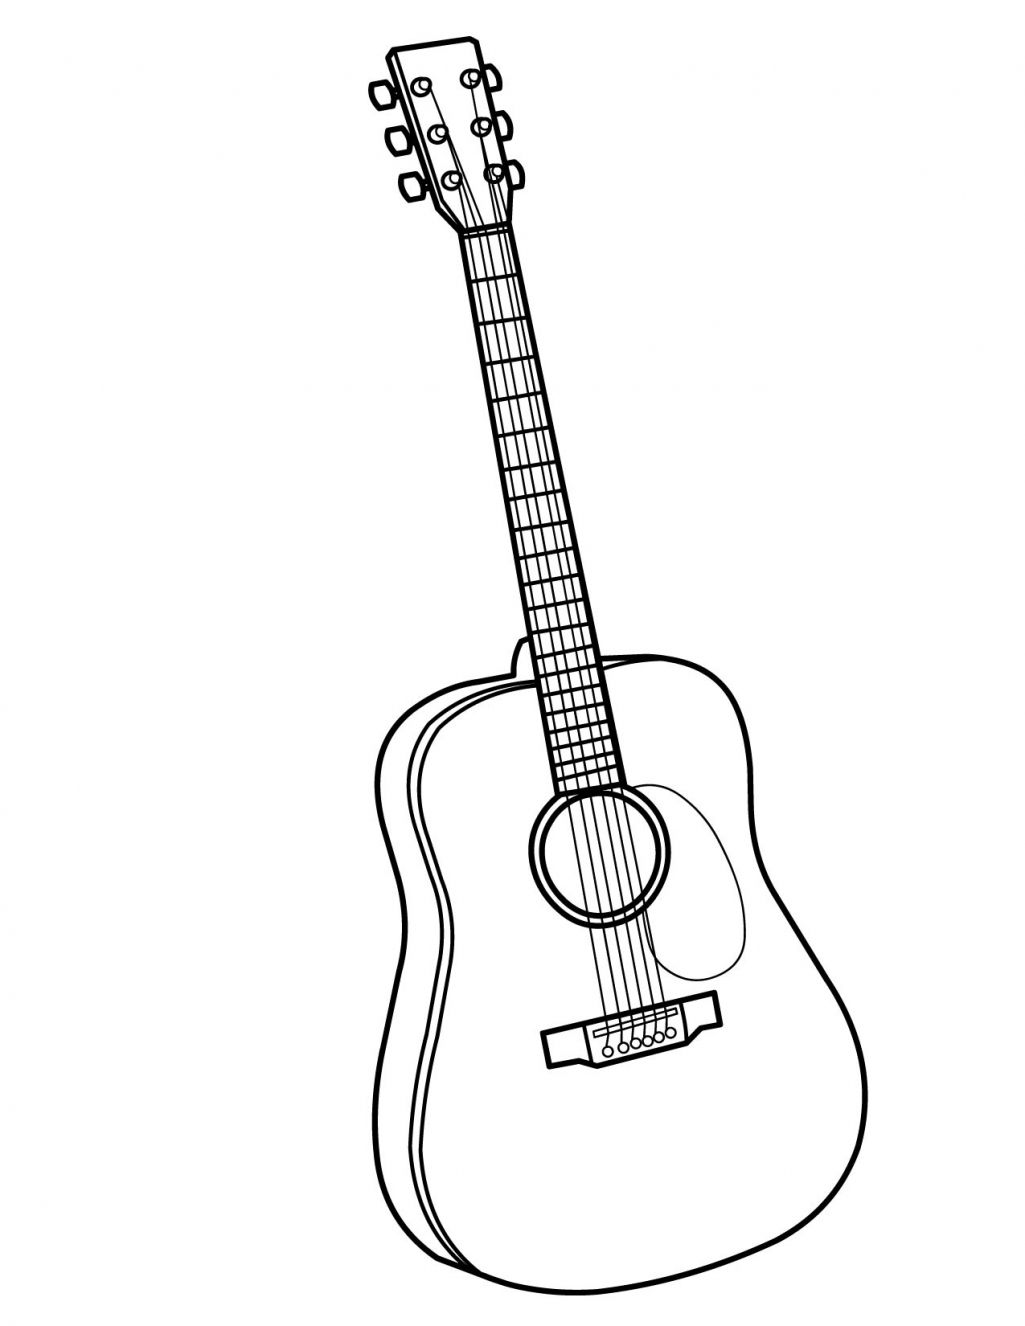 Gutair Colouring Pages Printable Colouring Pictures Of Musical Instruments Printable Colouring Pictures Of M Music Coloring Coloring For Kids Music Instruments